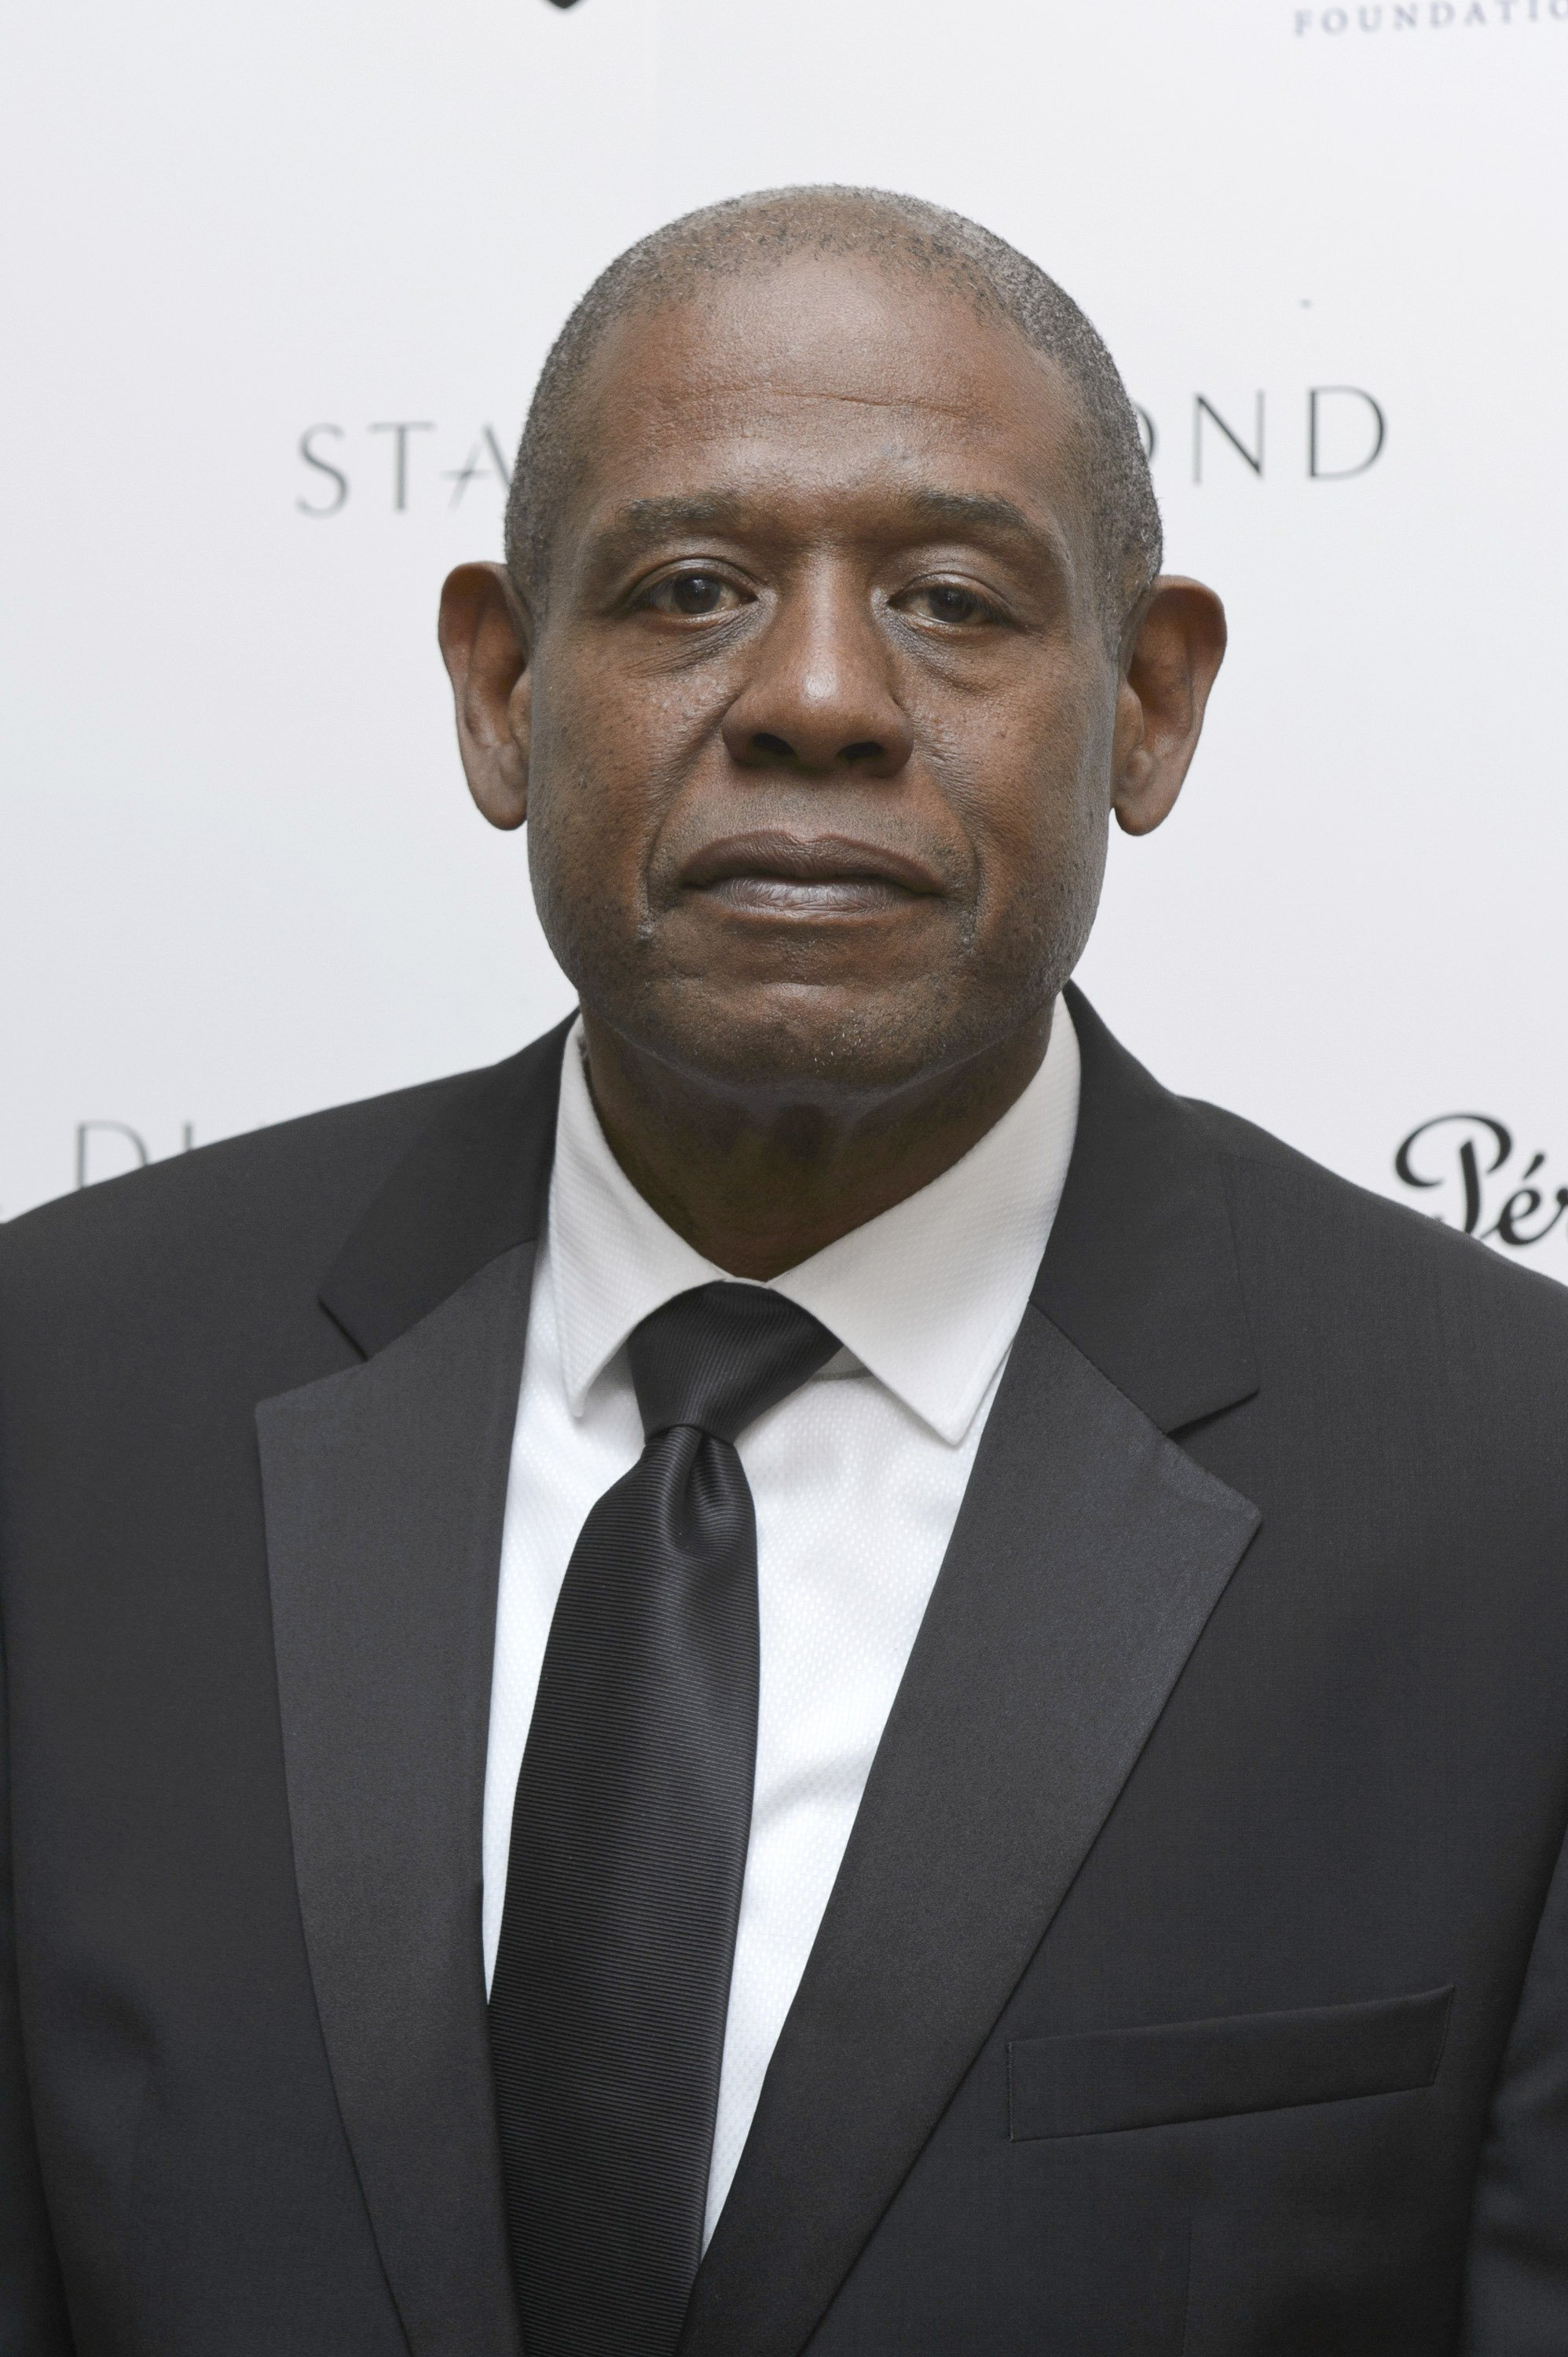 Forest Whitaker. I Image: Getty Images.